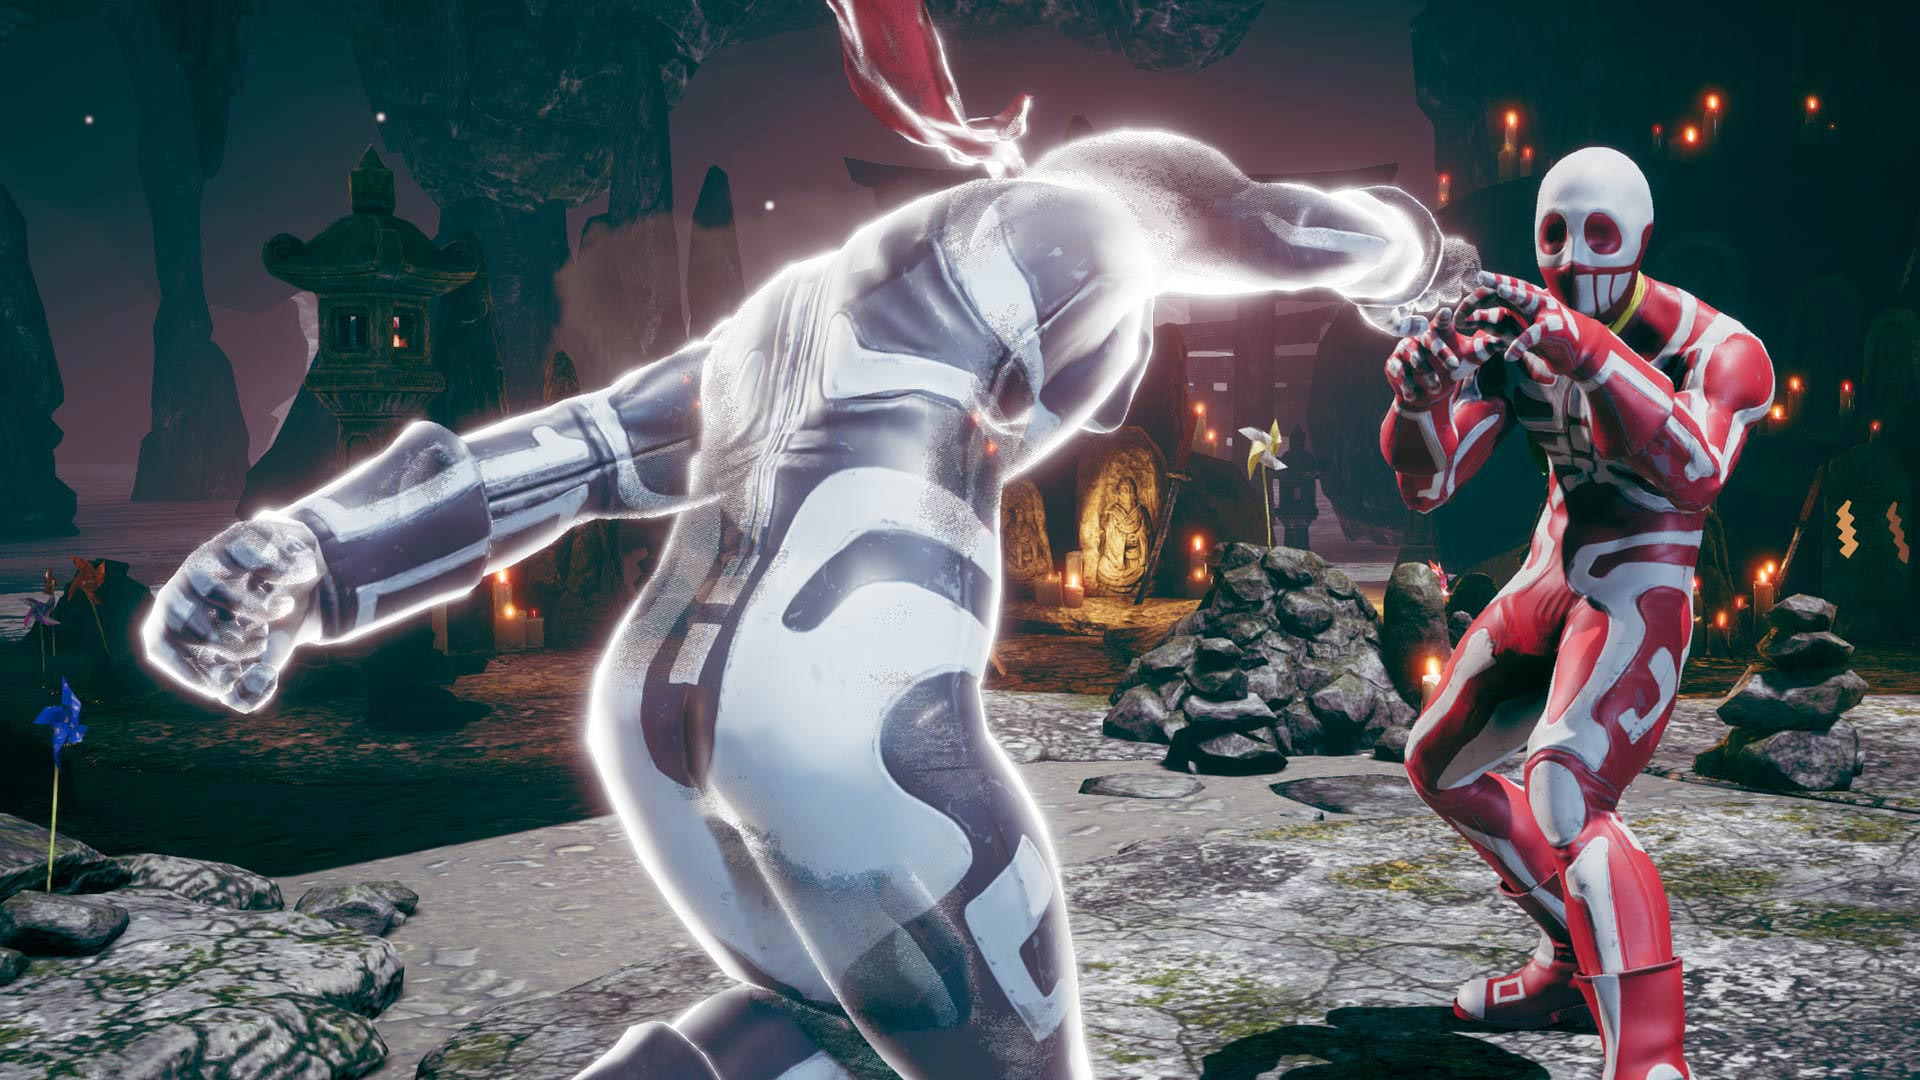 Fighting EX Layer launch screenshots 7 out of 10 image gallery